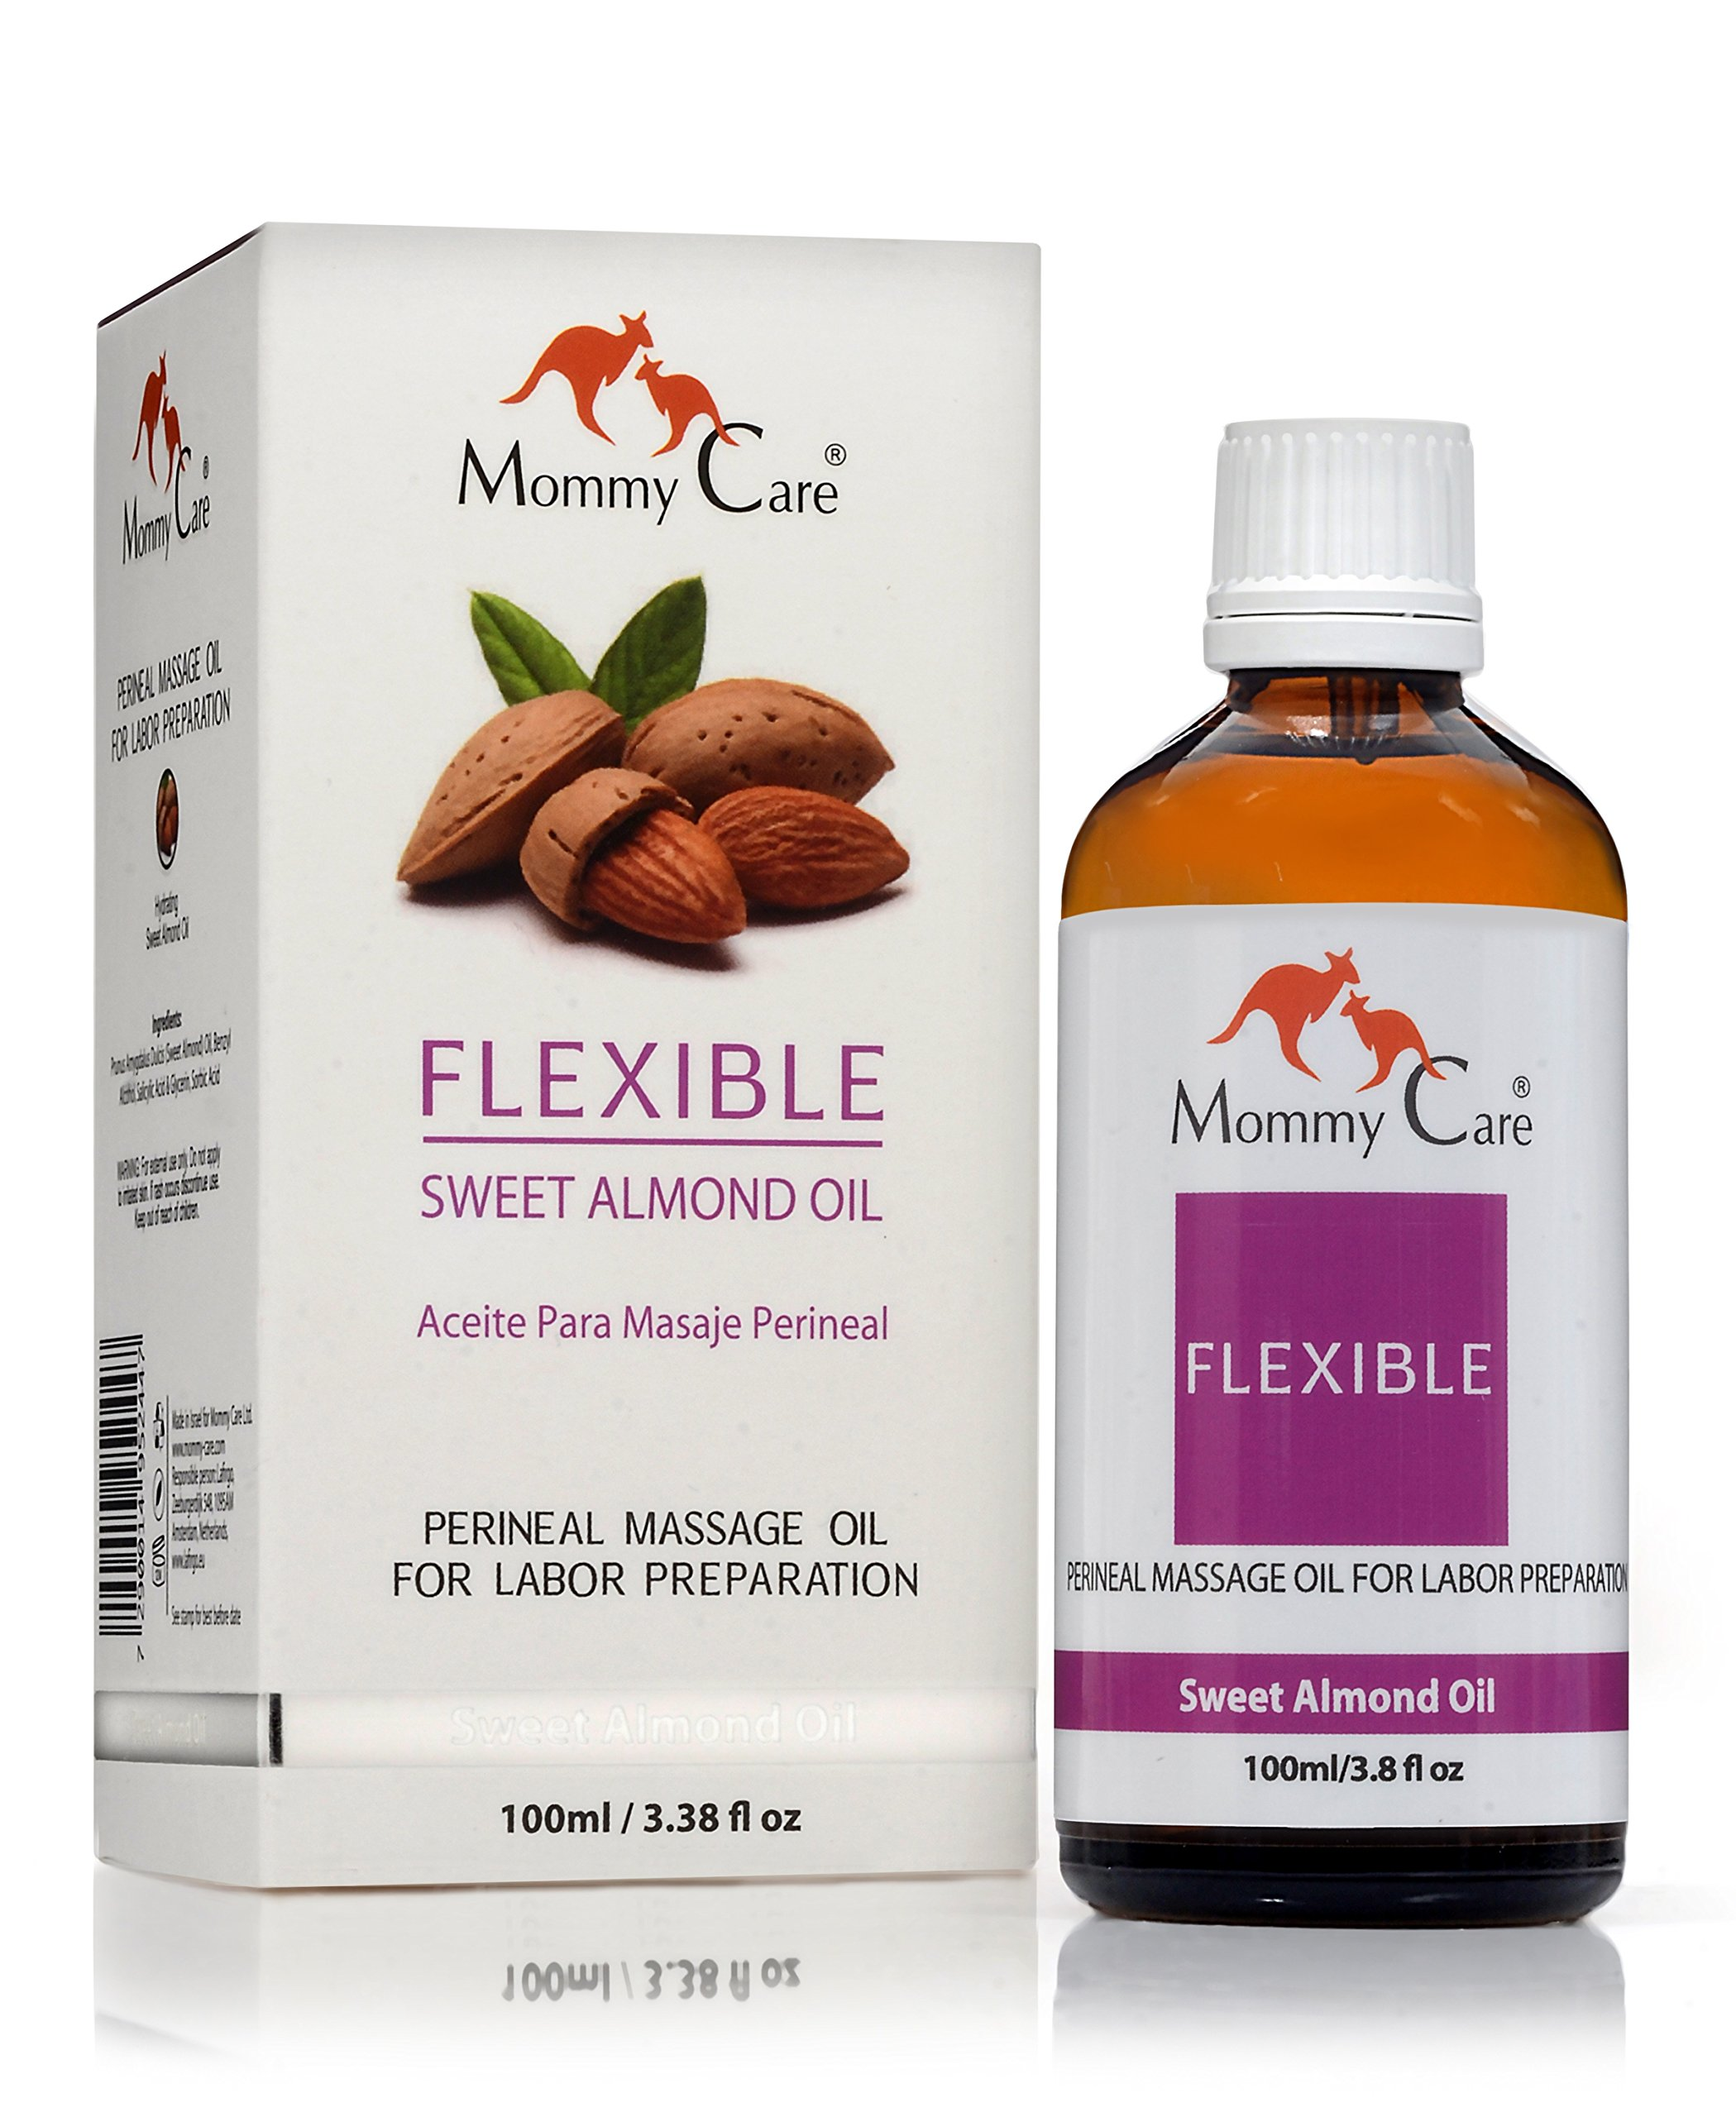 Mommy Care Flexible Perineal Massage Oil, Sweet Almond Oil For Pregnancy and Postpartum Recovery 100ml/3.38 fl.oz Certified Organic All Natural